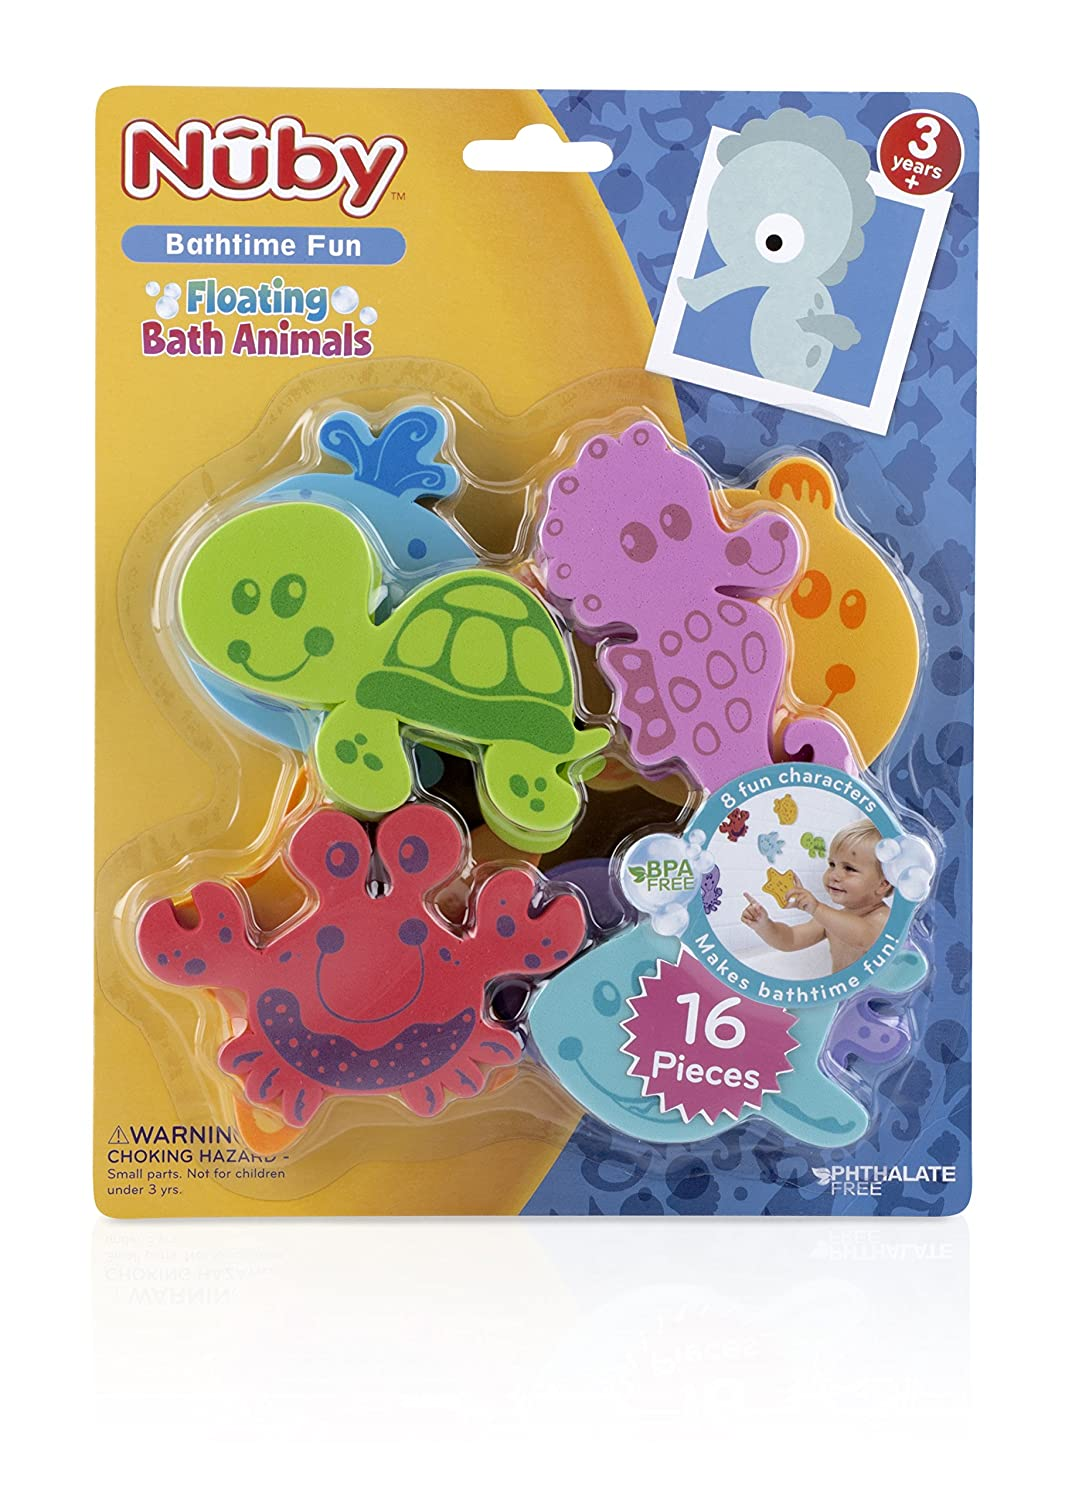 Amazon.com : Nuby 16-Piece Floating Foam Bath Animals Set : Bathtub ...